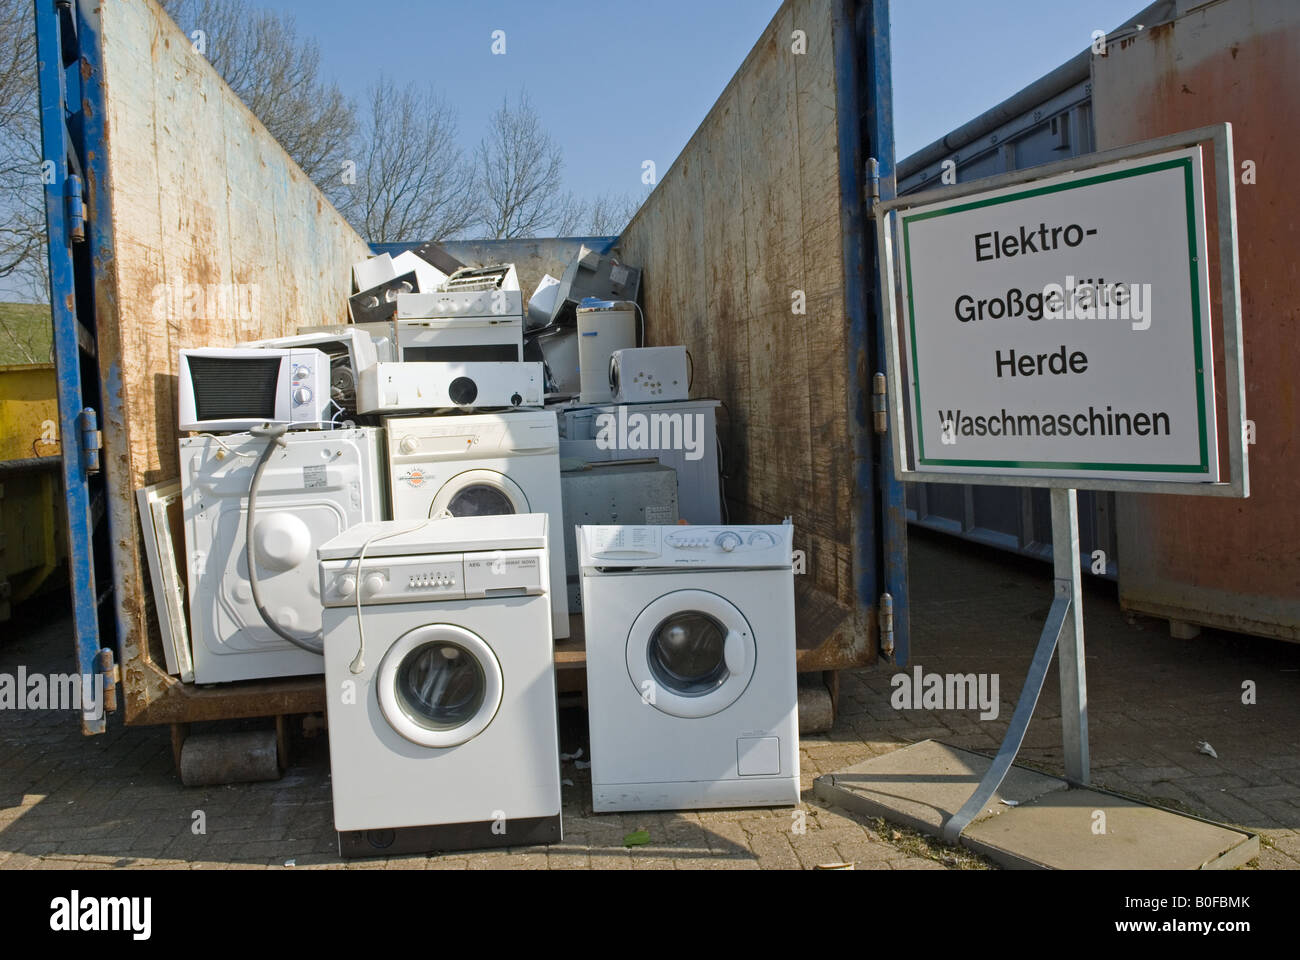 Disused Kitchen Appliances At A Recycling Centre